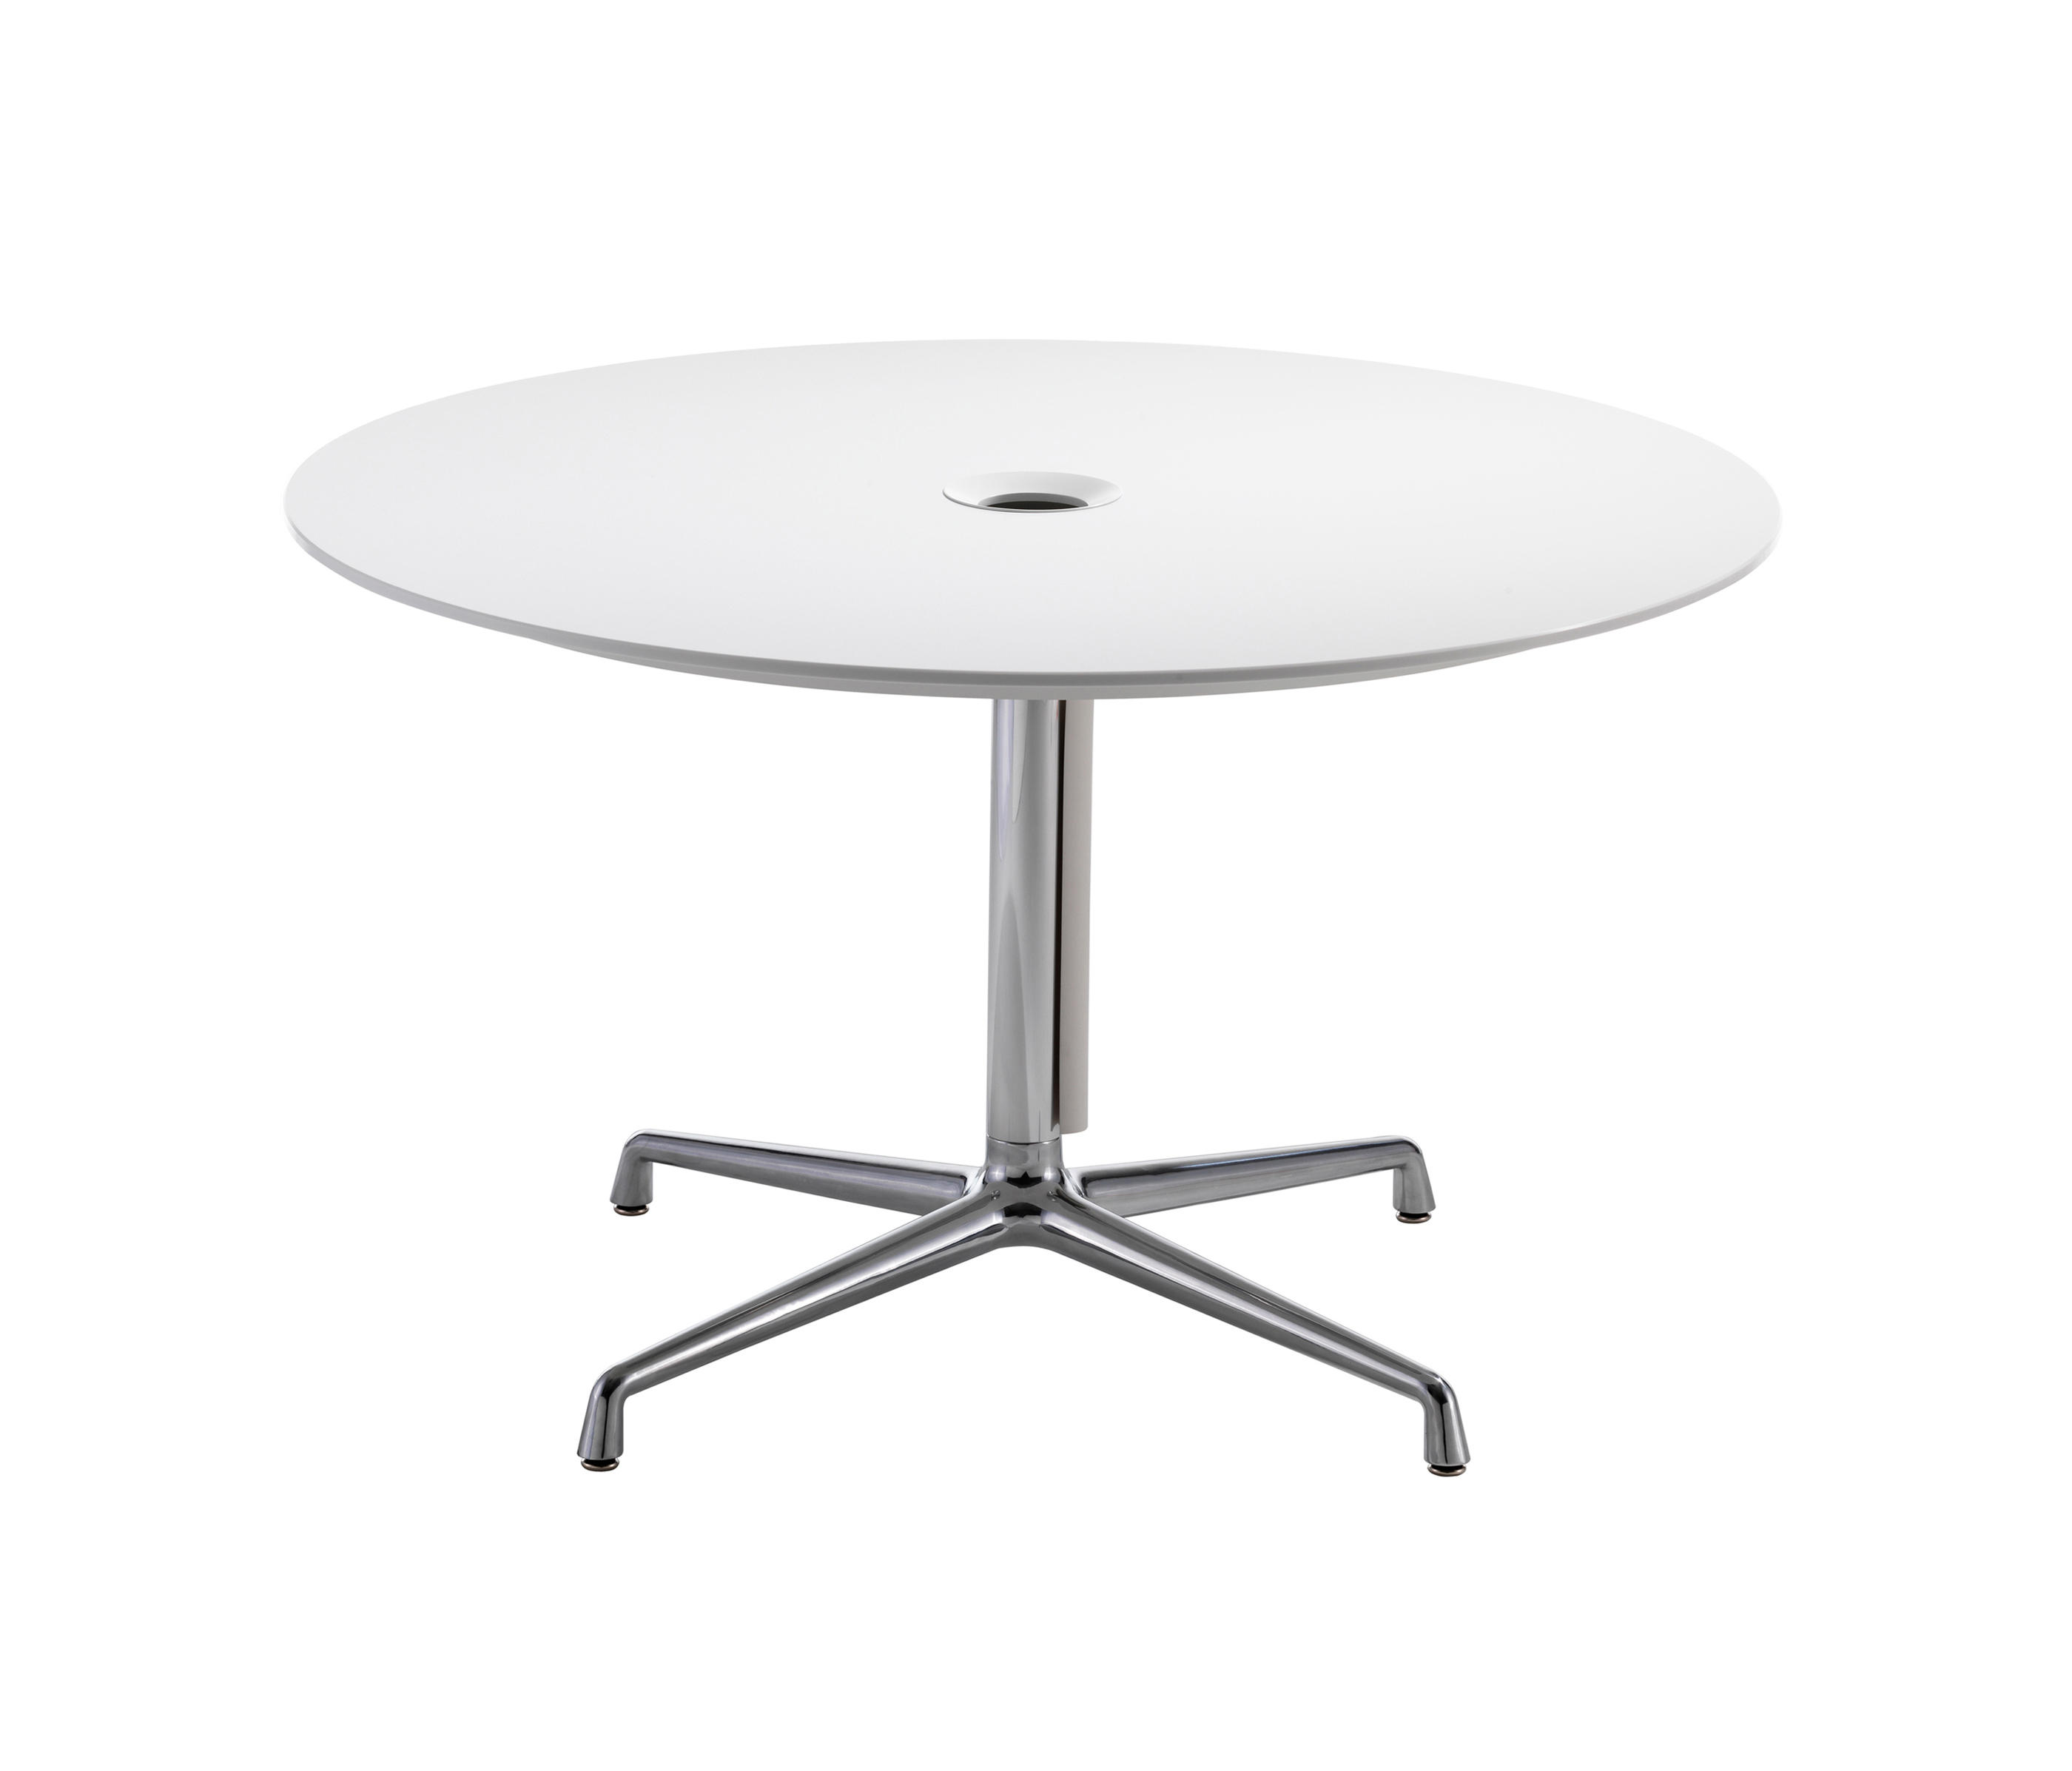 preside round lg dl conference furniture fmt hon with office x table base harvest tables wid